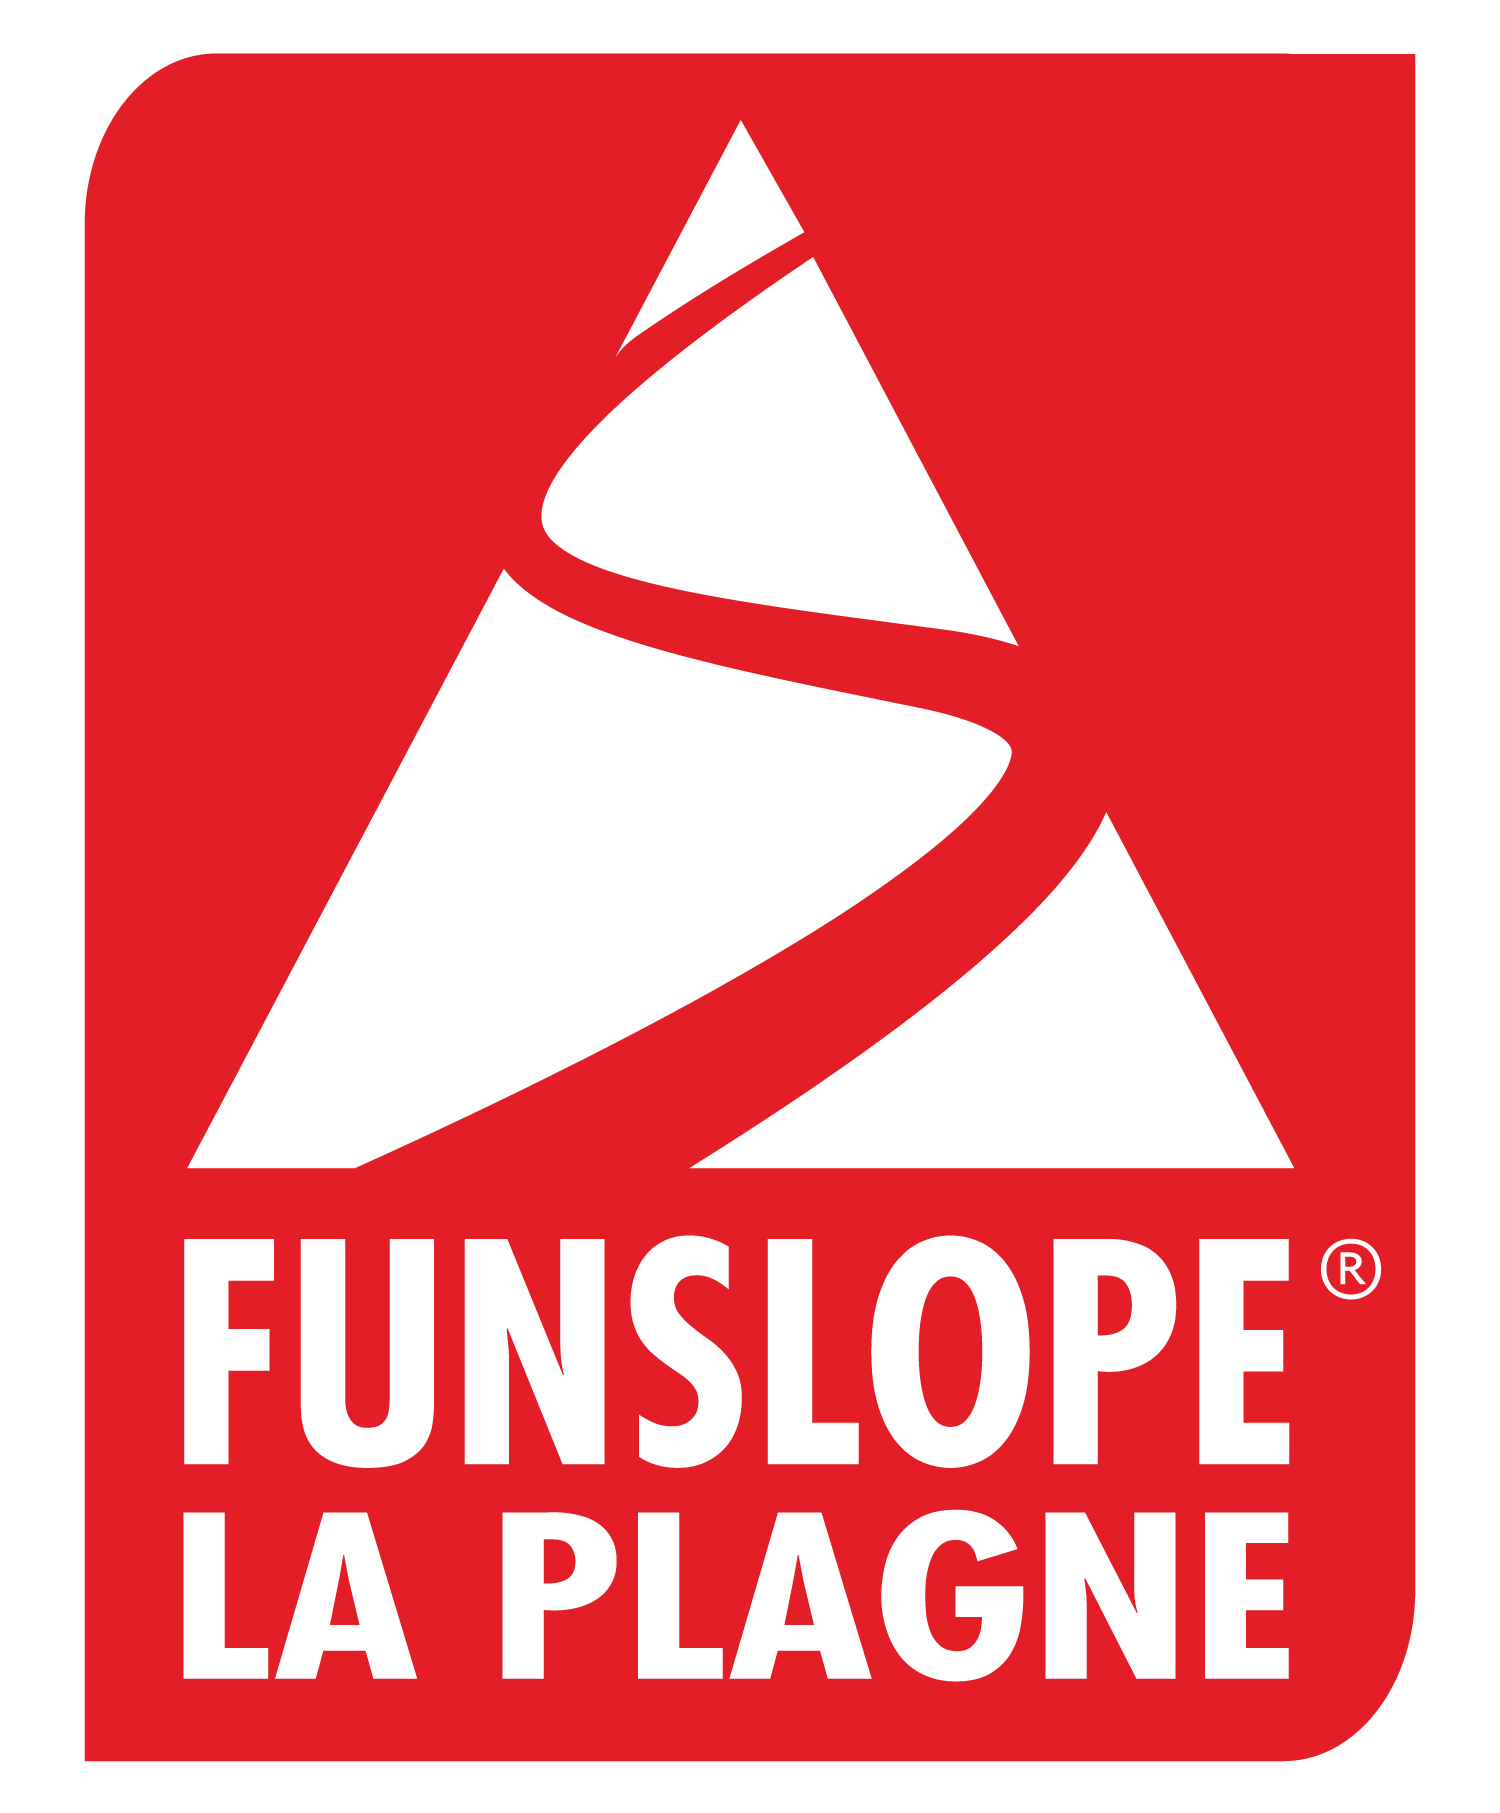 funslope, fun slope, funslope la Plagne, longest fun slope in la Plagne, jump, snails, modules, bumps, turns